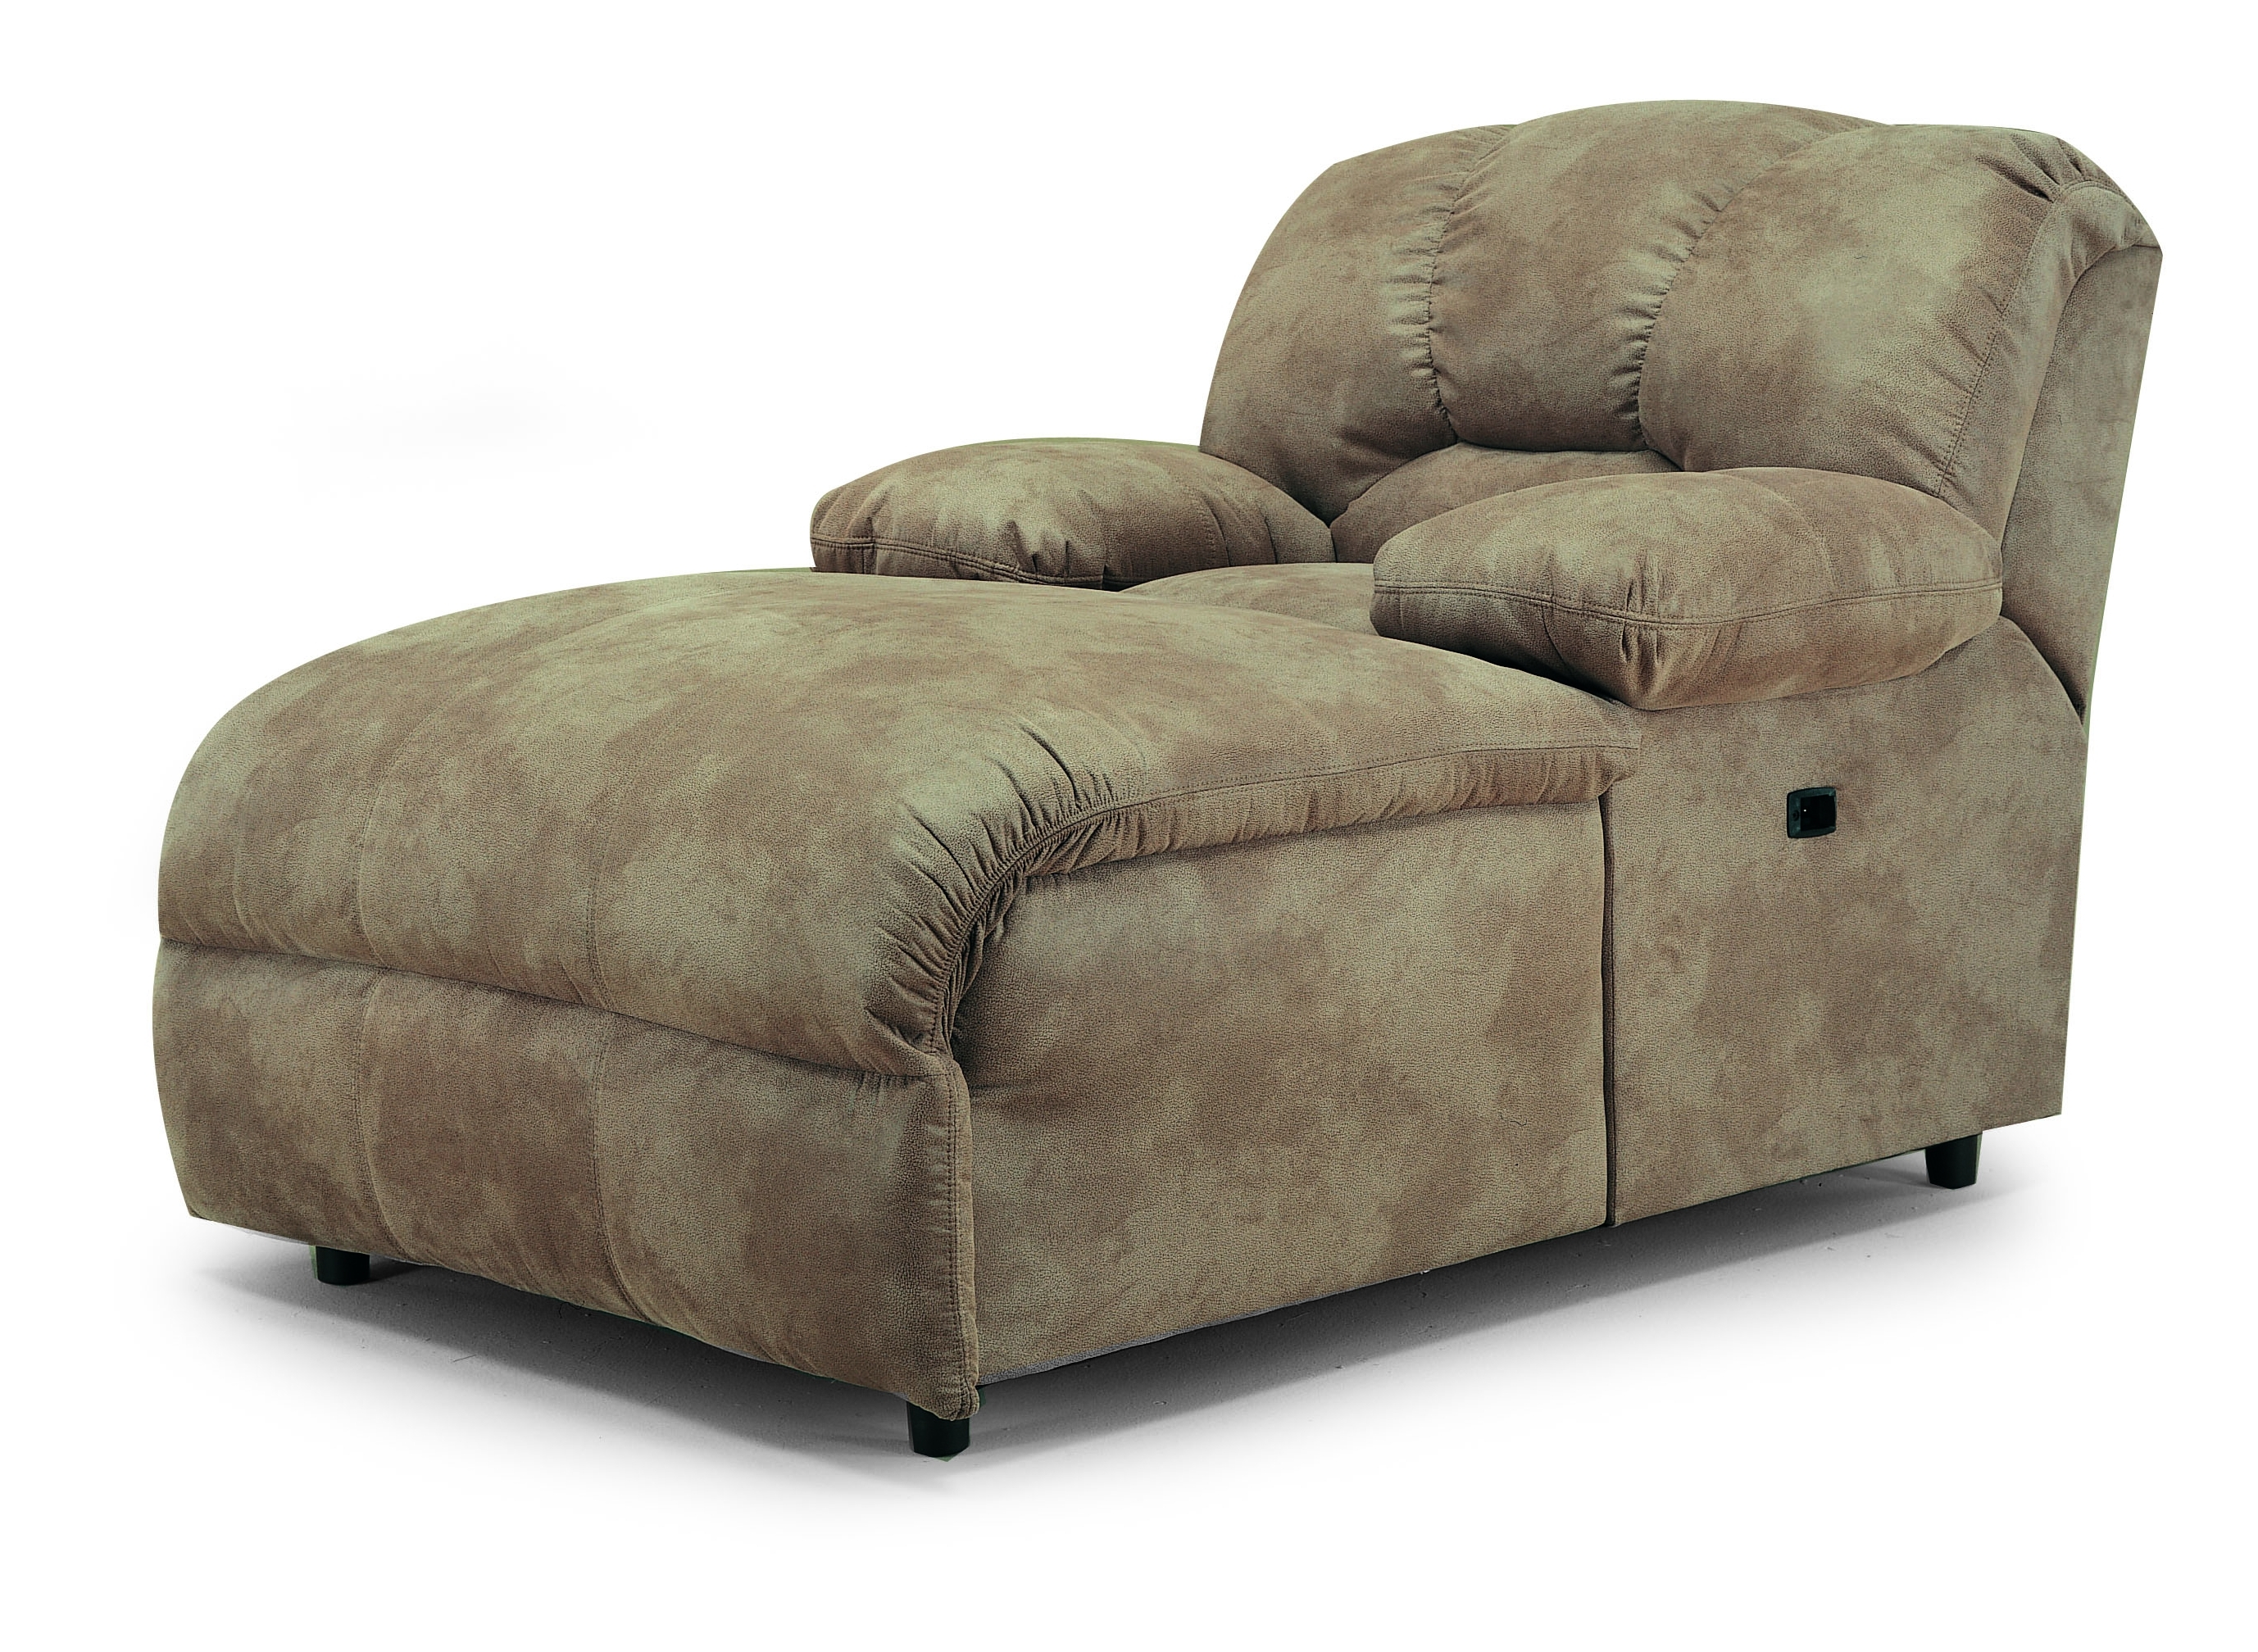 Recliner Chaise Lounges With Regard To Fashionable Popular Of Reclining Chaise Lounge With Recliner Chaise Lounge My (View 13 of 15)